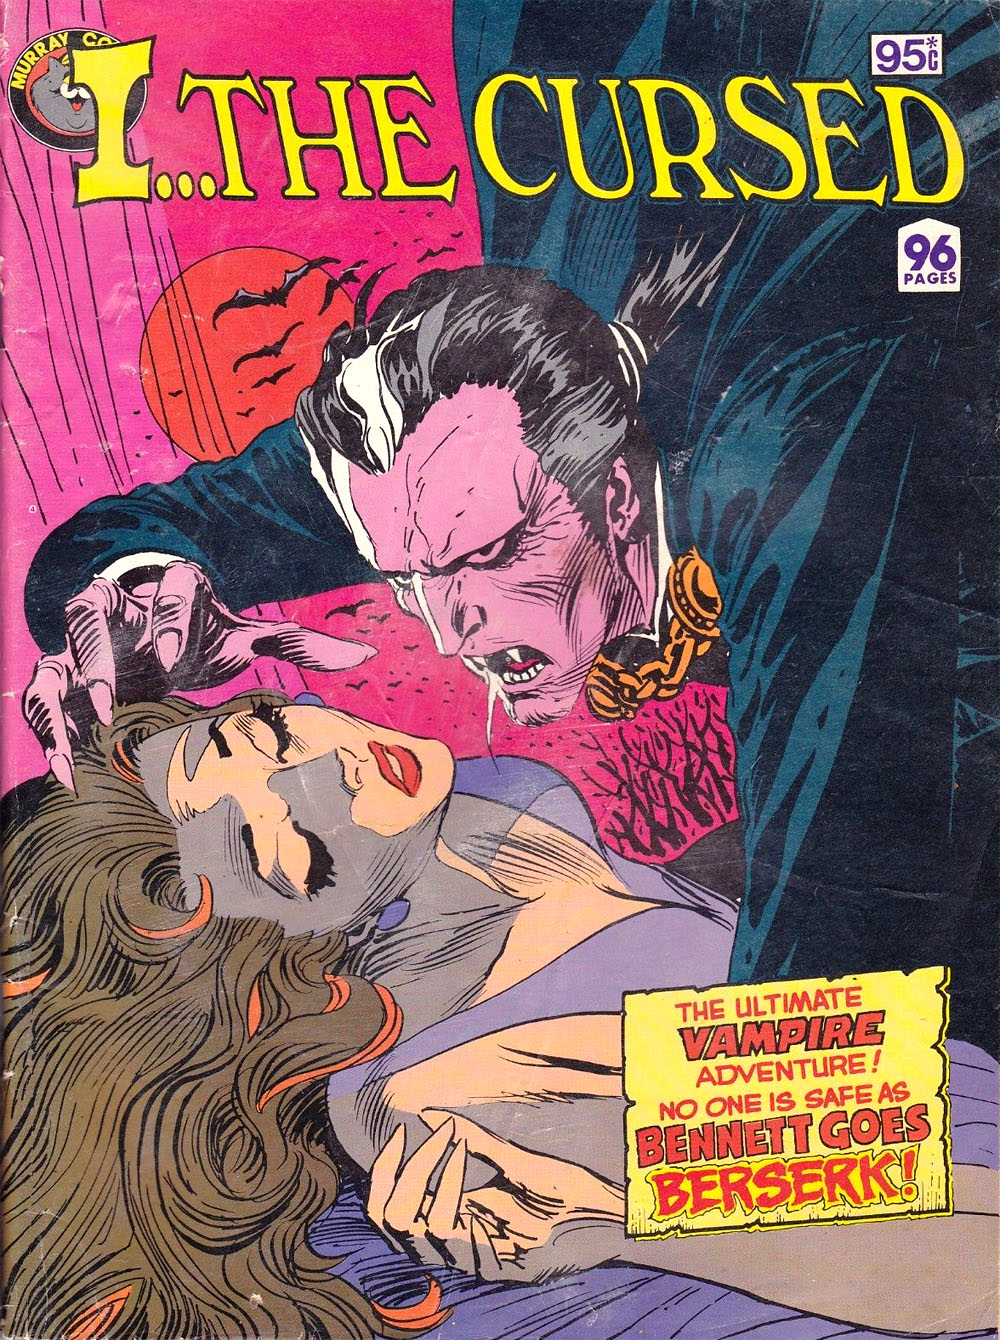 Bennett Goes Berserk—I... The Cursed, 1982? [Murray]